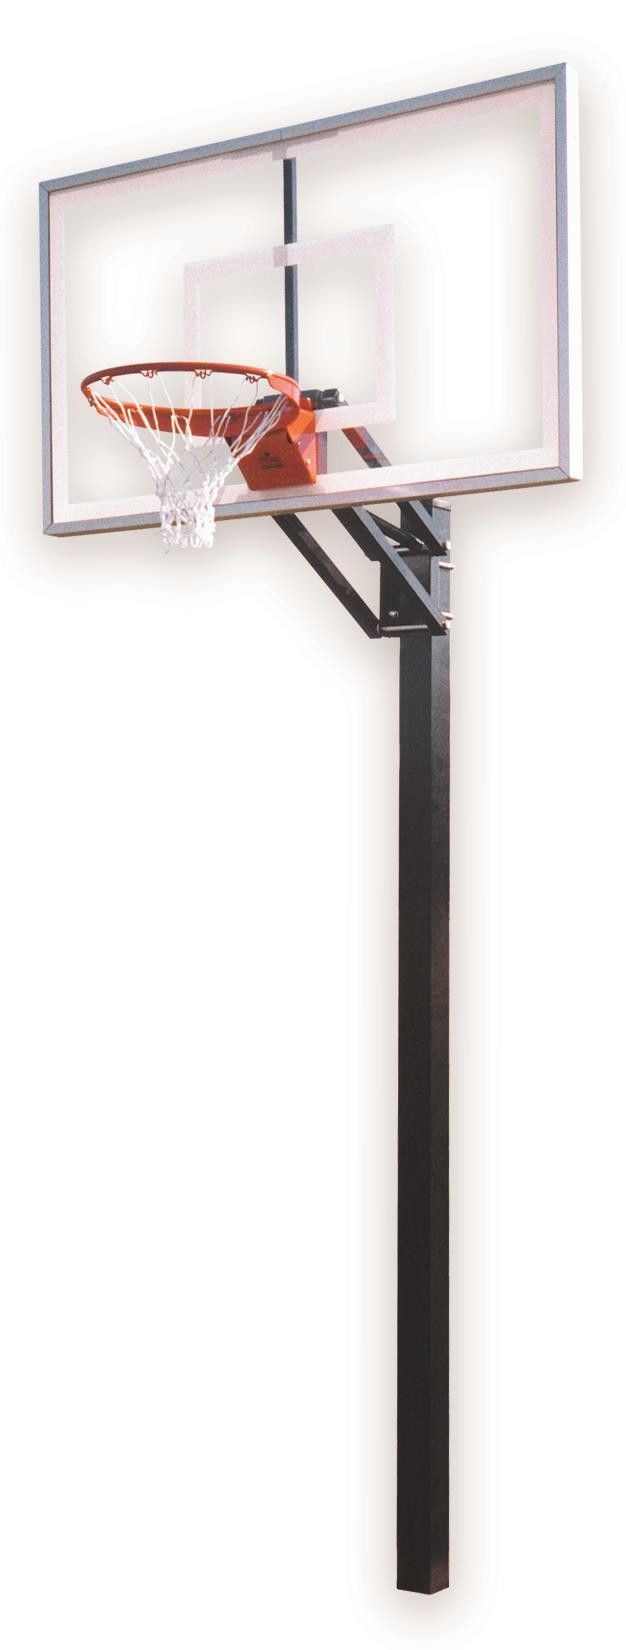 First Team Champ Select In Ground Outdoor Adjustable Basketball Hoop 60 inch Acrylic from NJ Swingsets